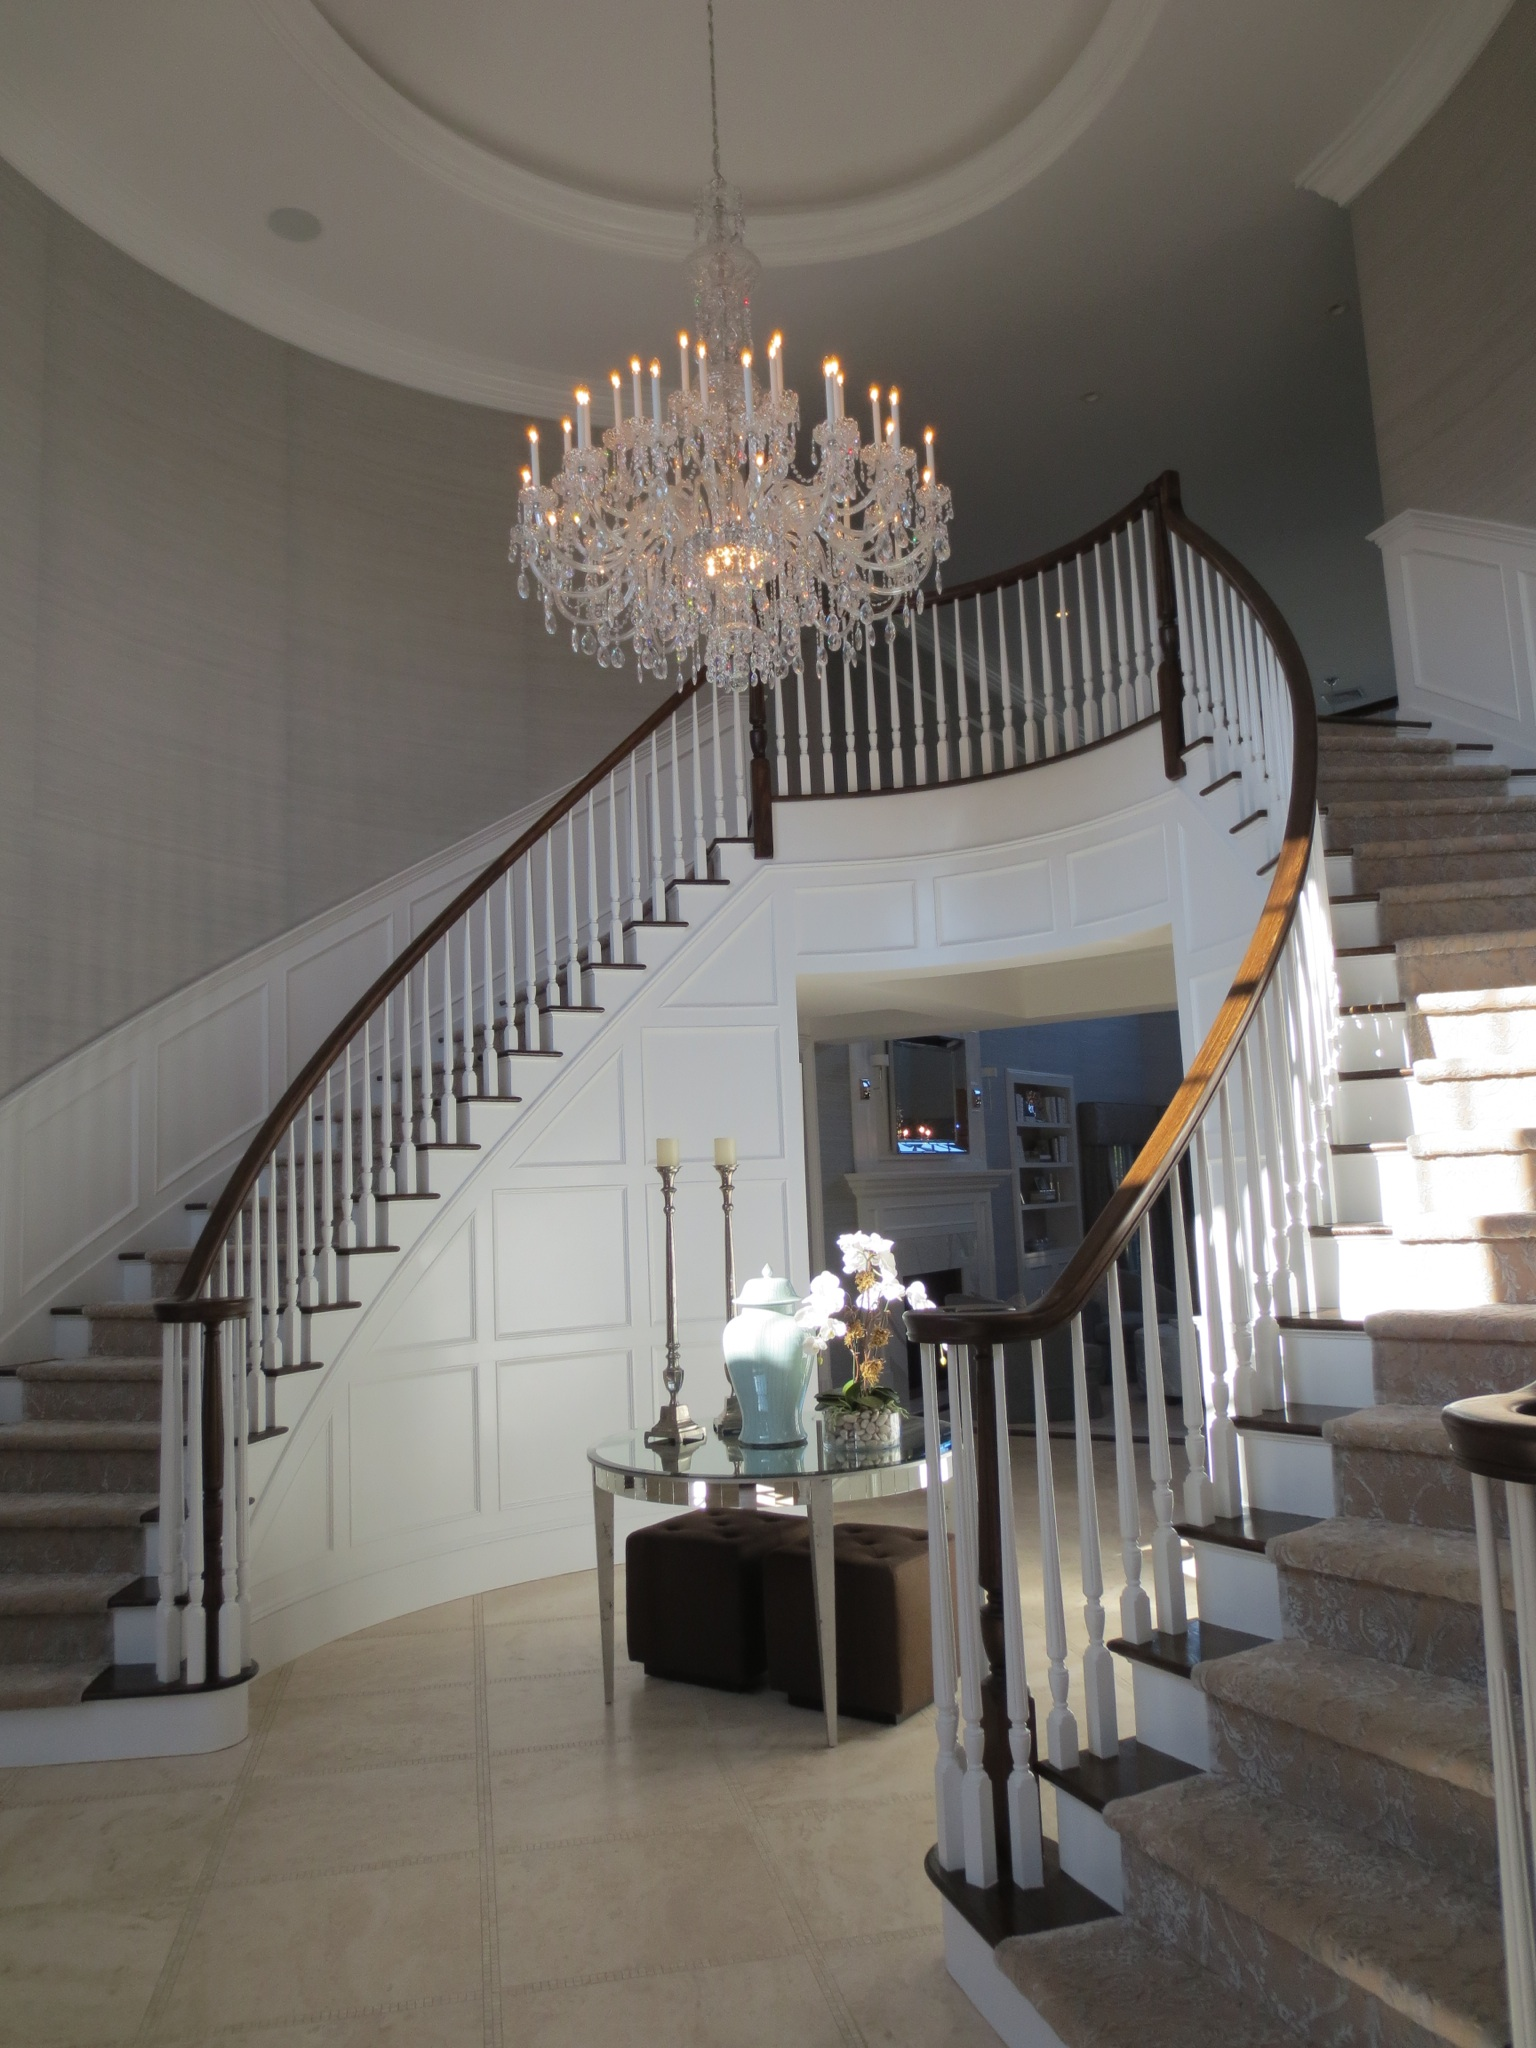 crystal-entryway-chandelier-ideas-image